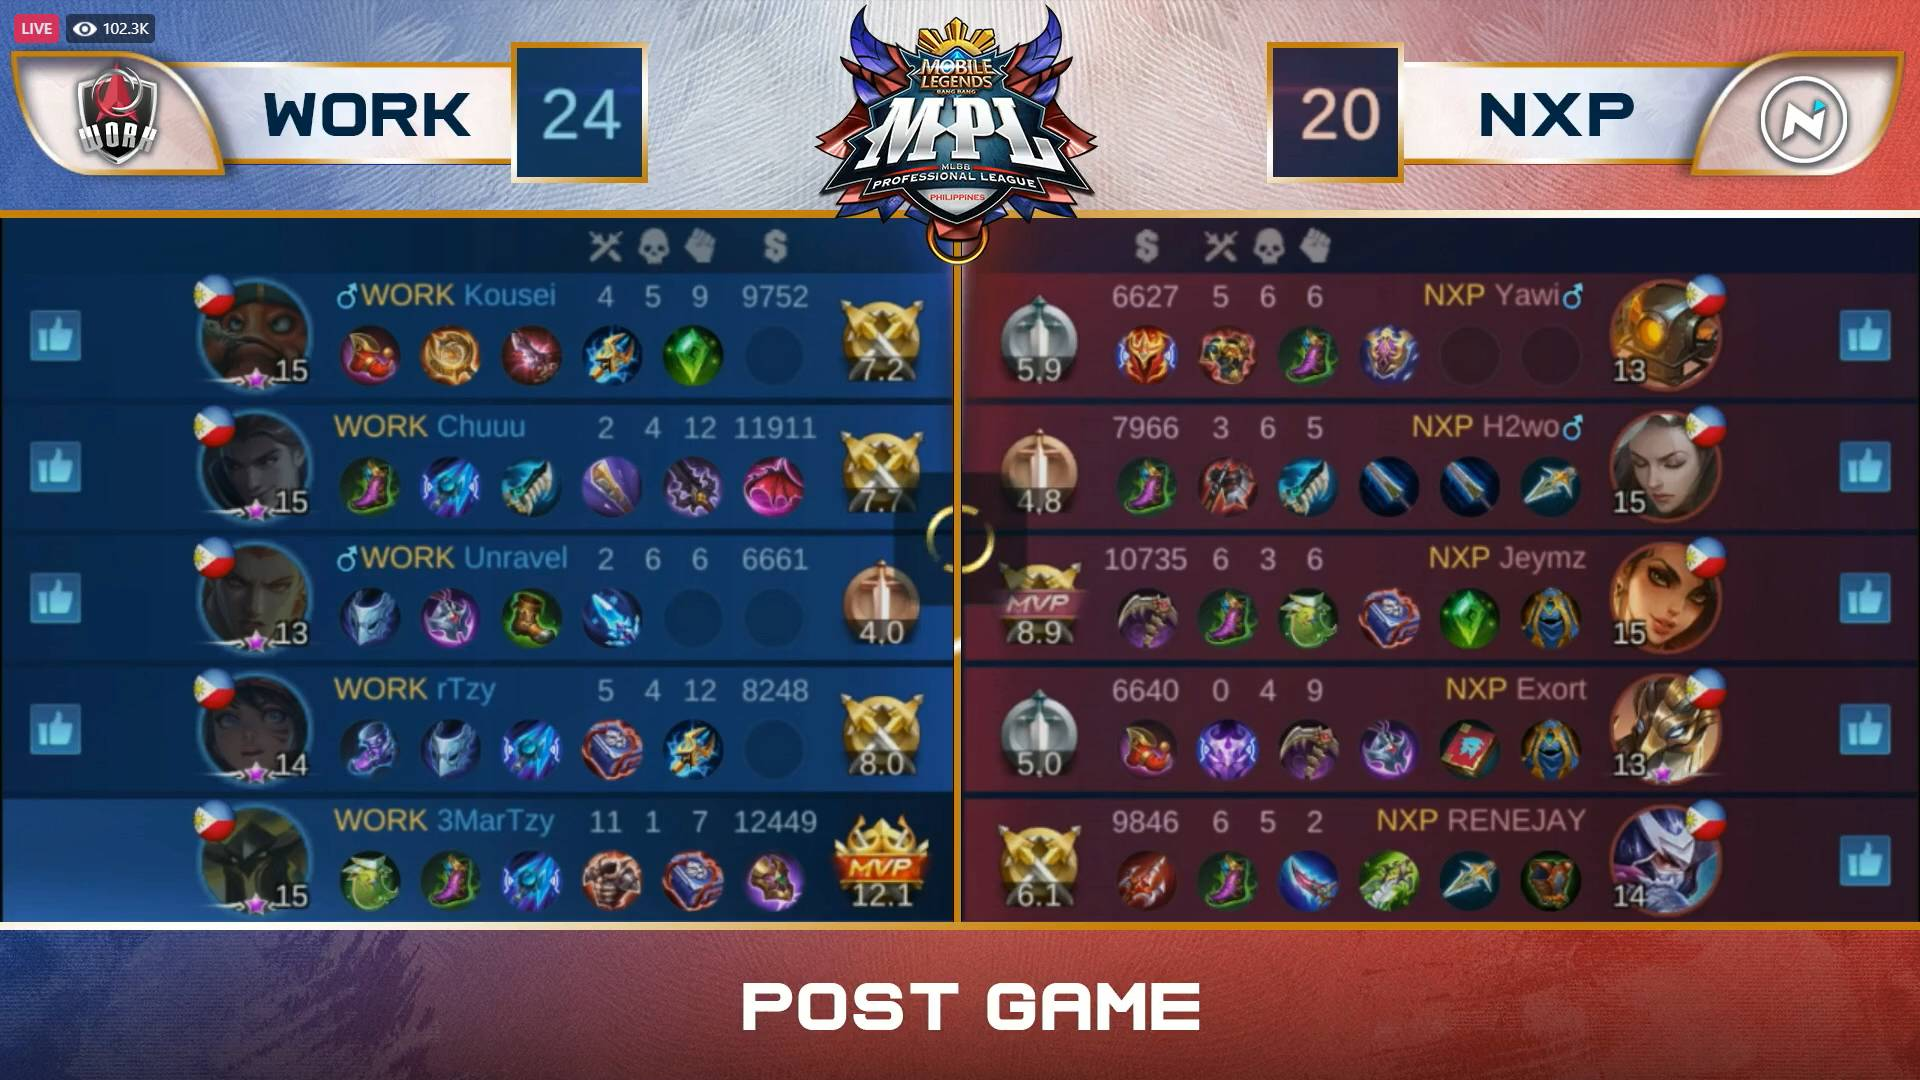 MPL-PH-7-Work-Auster-def-Nexplay-Game-2 Work Auster notches first-ever MPL-PH win, shocks Nexplay ESports Mobile Legends MPL-PH News  - philippine sports news